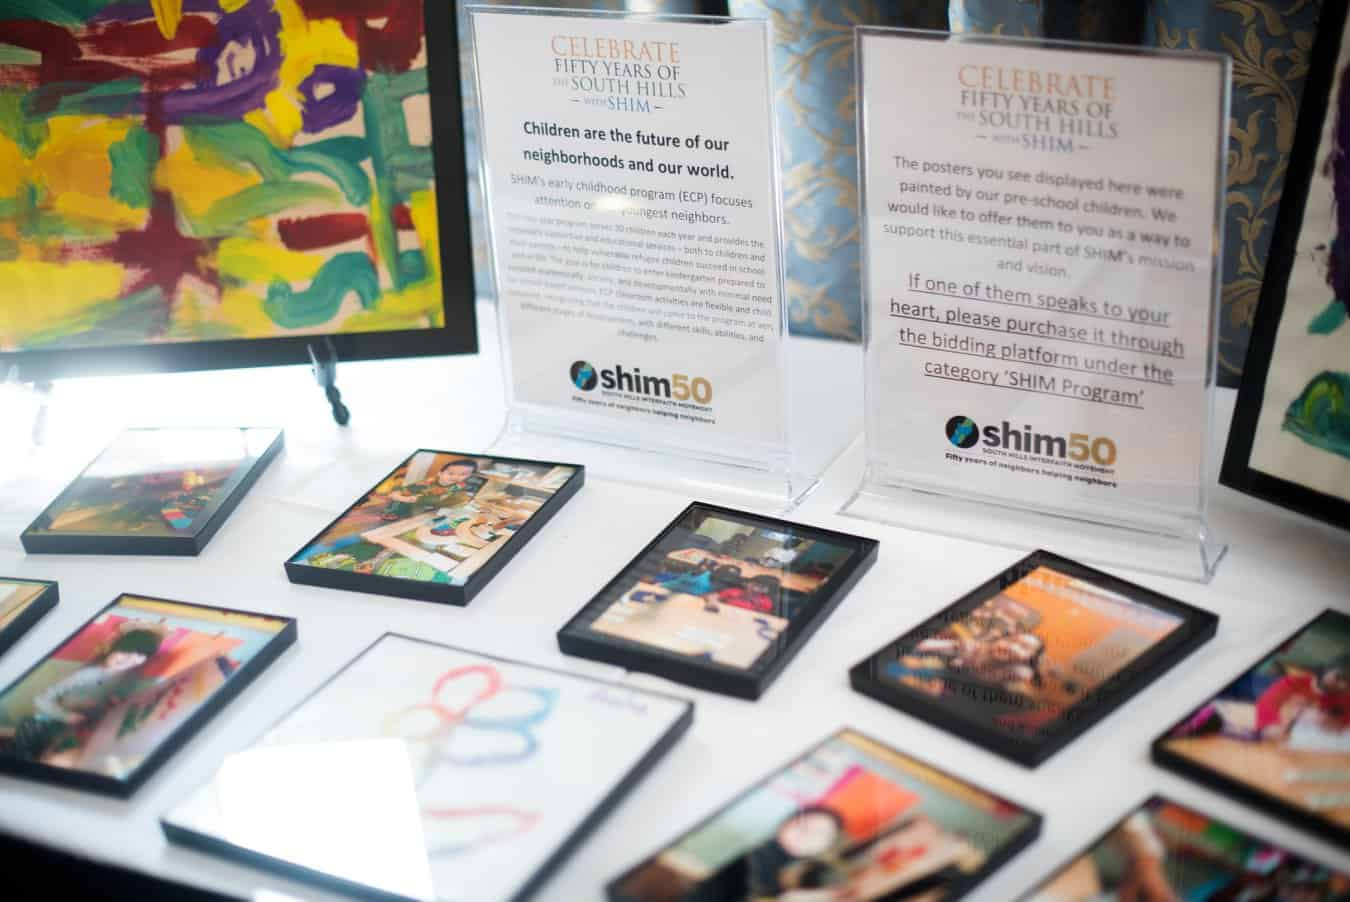 Celebrate SHIM 2018 auction items